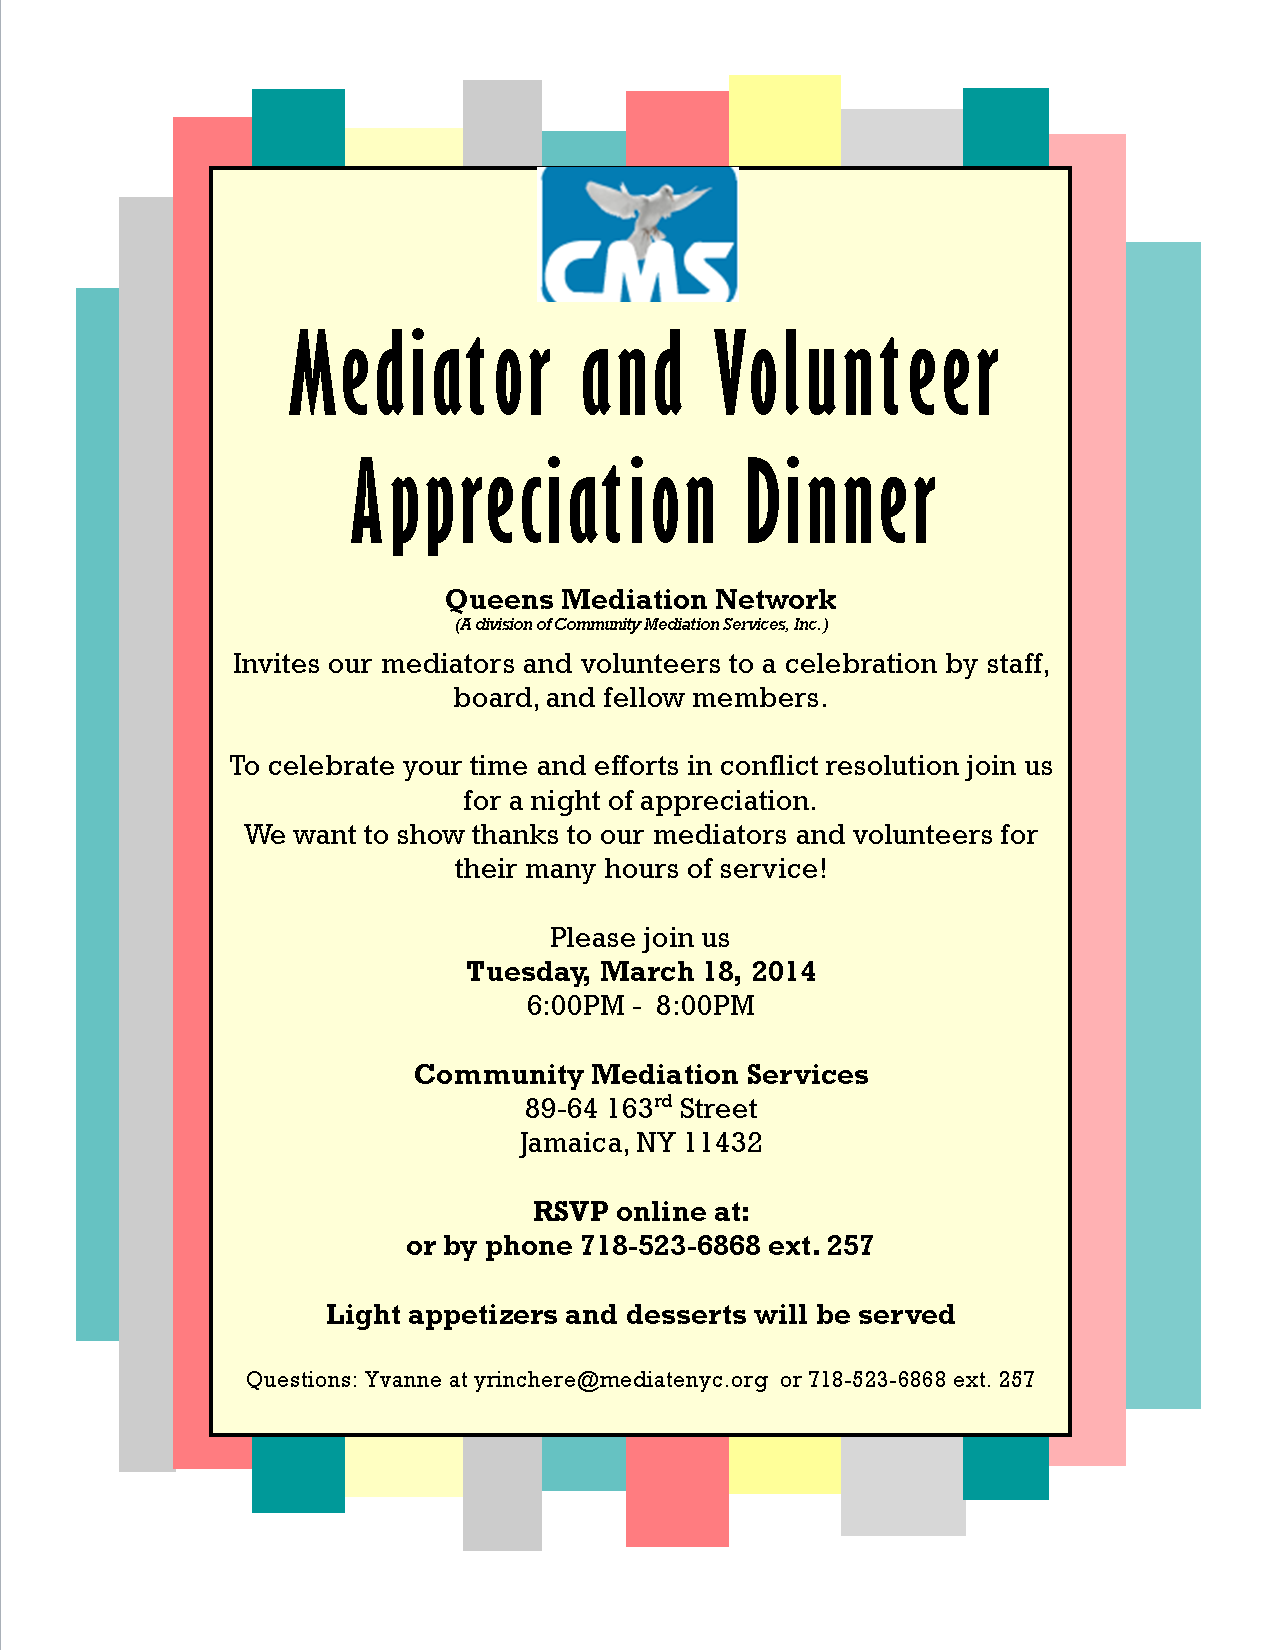 Queens Mediation Network (A division of Community Mediation Services, Inc.) Invites you to a celebration by staff, board, and fellow members. To celebrate your time and efforts in conflict resolution join us for a night of appreciation. We want to show thanks to our mediators and volunteers for their many hours of service!  Please join us Tuesday, March 4, 2014 6:00PM -  8:00PM  Community Mediation Services 89-64 163rd Street Jamaica, NY 11432  RSVP online at:  or by phone 718-523-6868 ext. 257  Light appetizers and desserts will be served  Questions: Yvanne at yrinchere@mediatenyc.org  or 718-523-6868 ext. 257